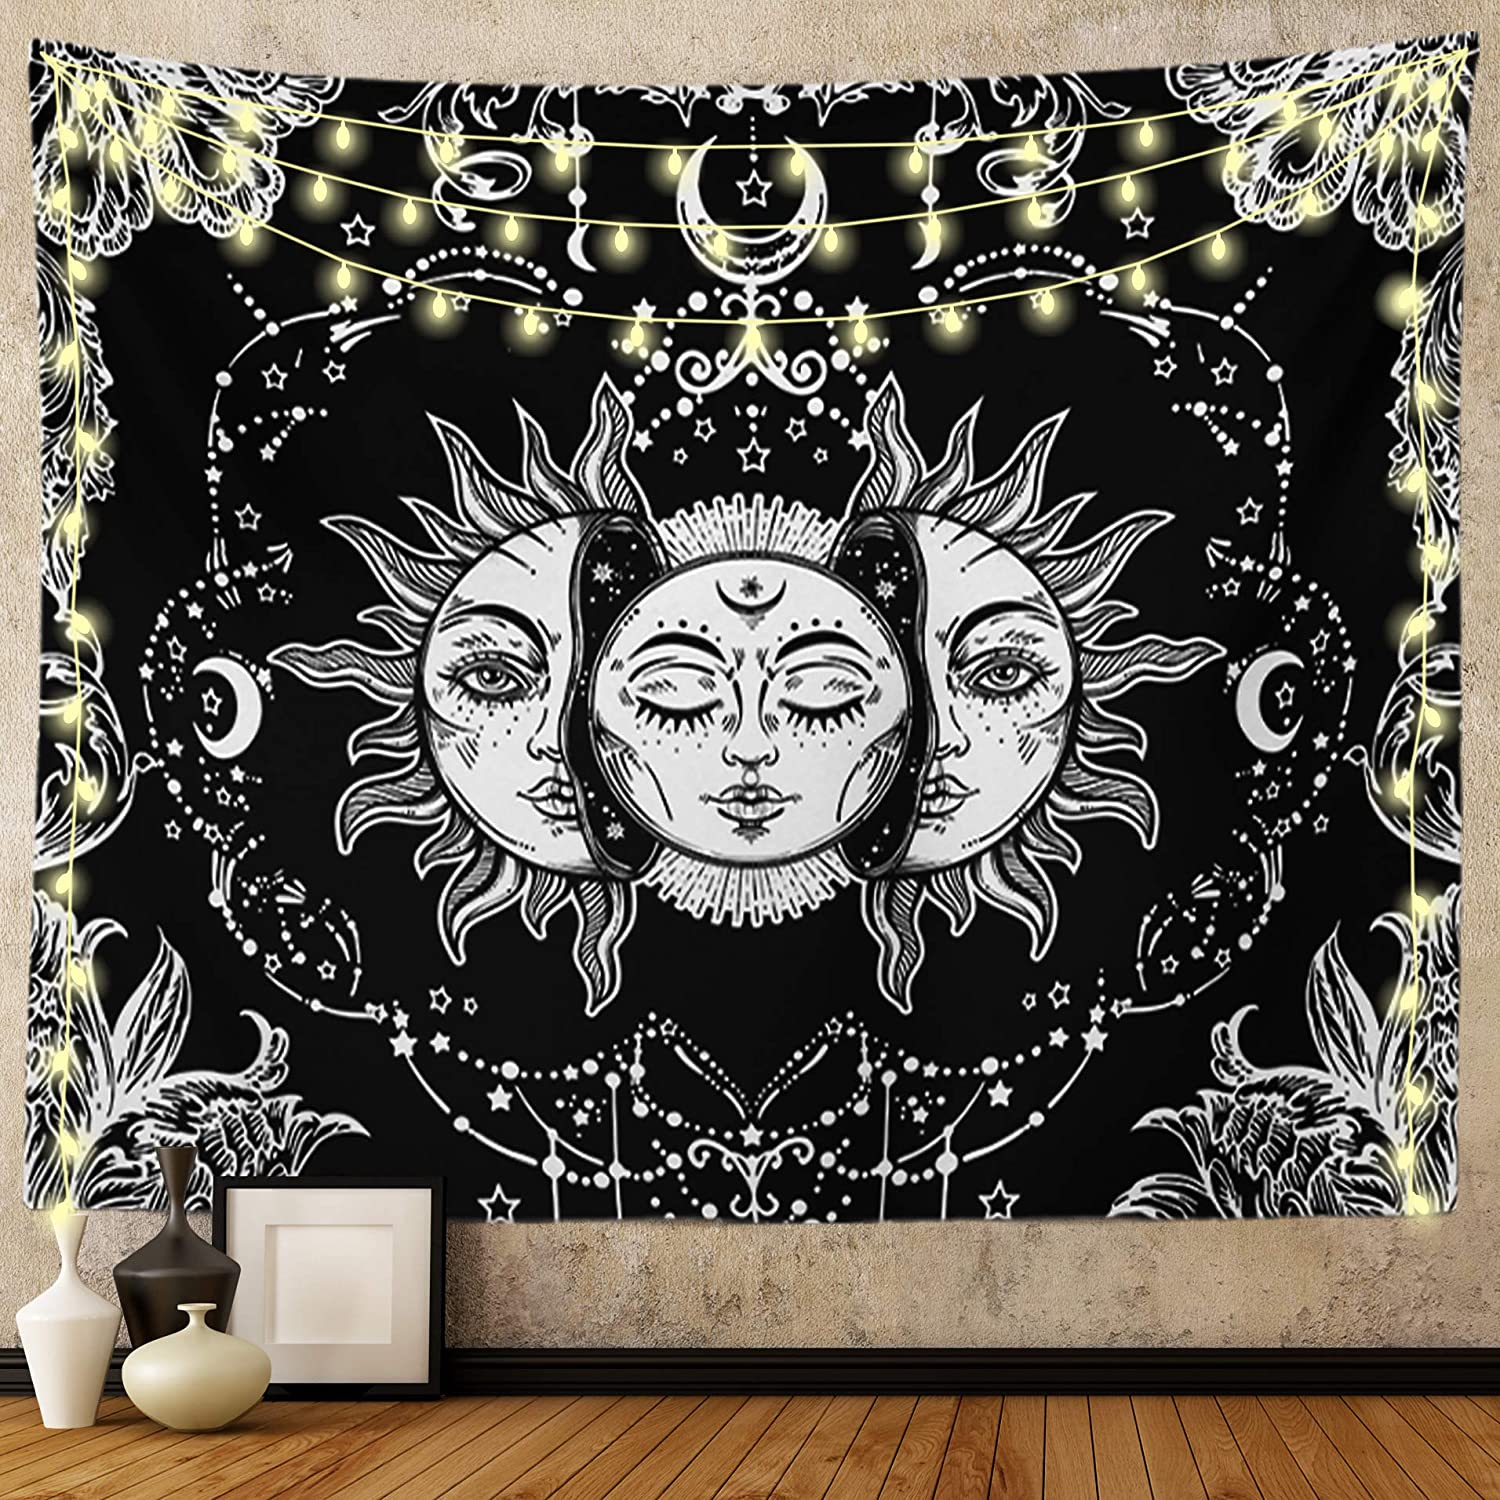 Ftuency Sun and Moon Tapestry, Black and White Tapestries Mystic Burning Sun with Star Wall Hanging decor for Bedroom(82.7